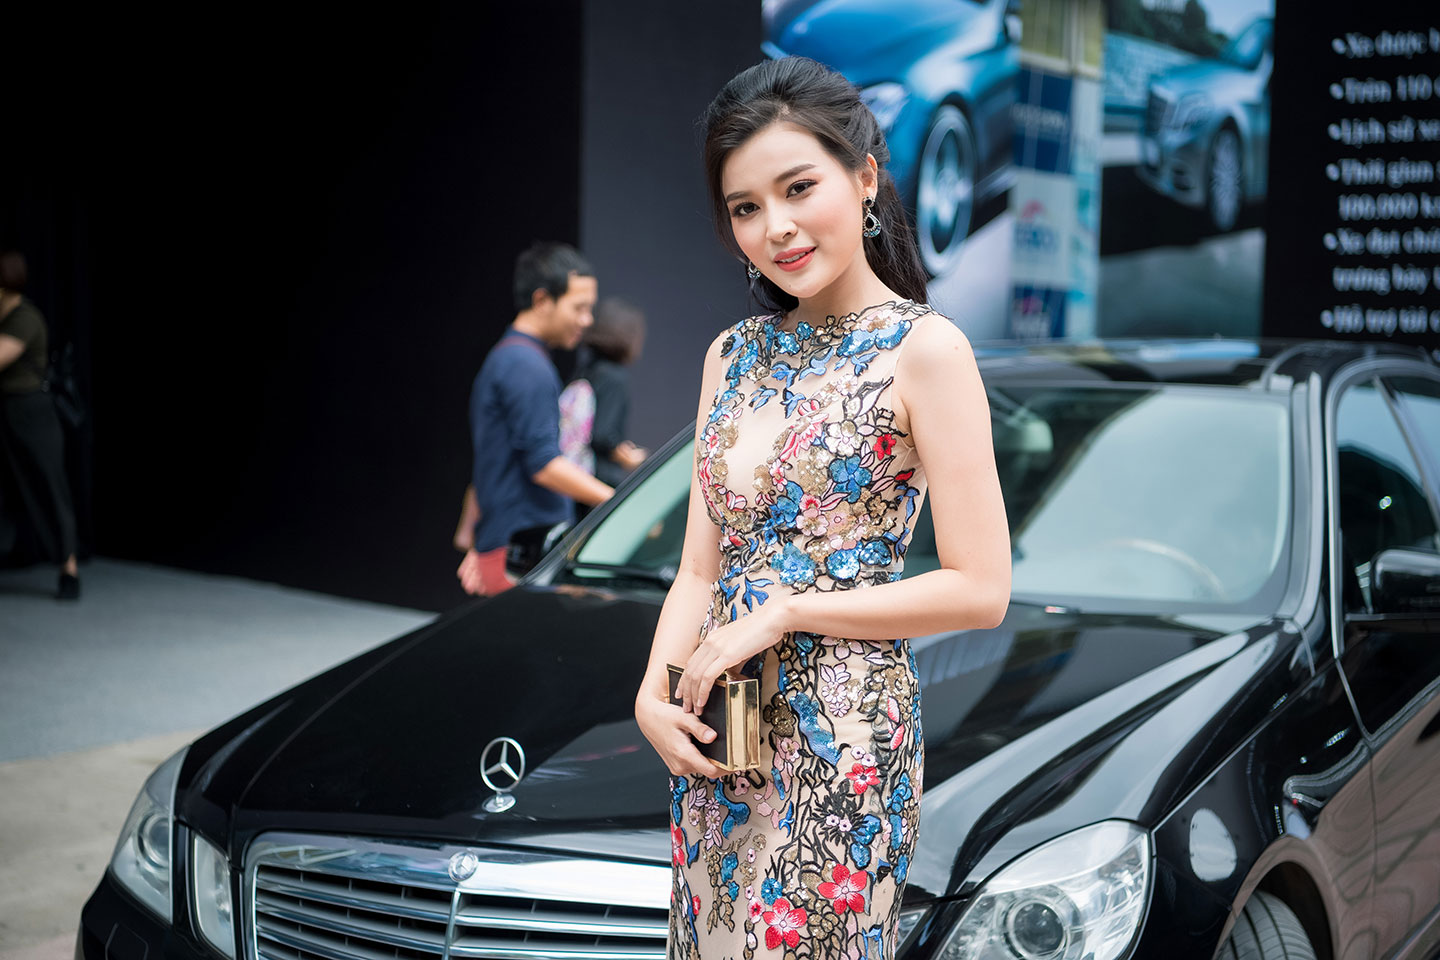 mercedes-benz-fascination-2017-nguoidep-1.jpg